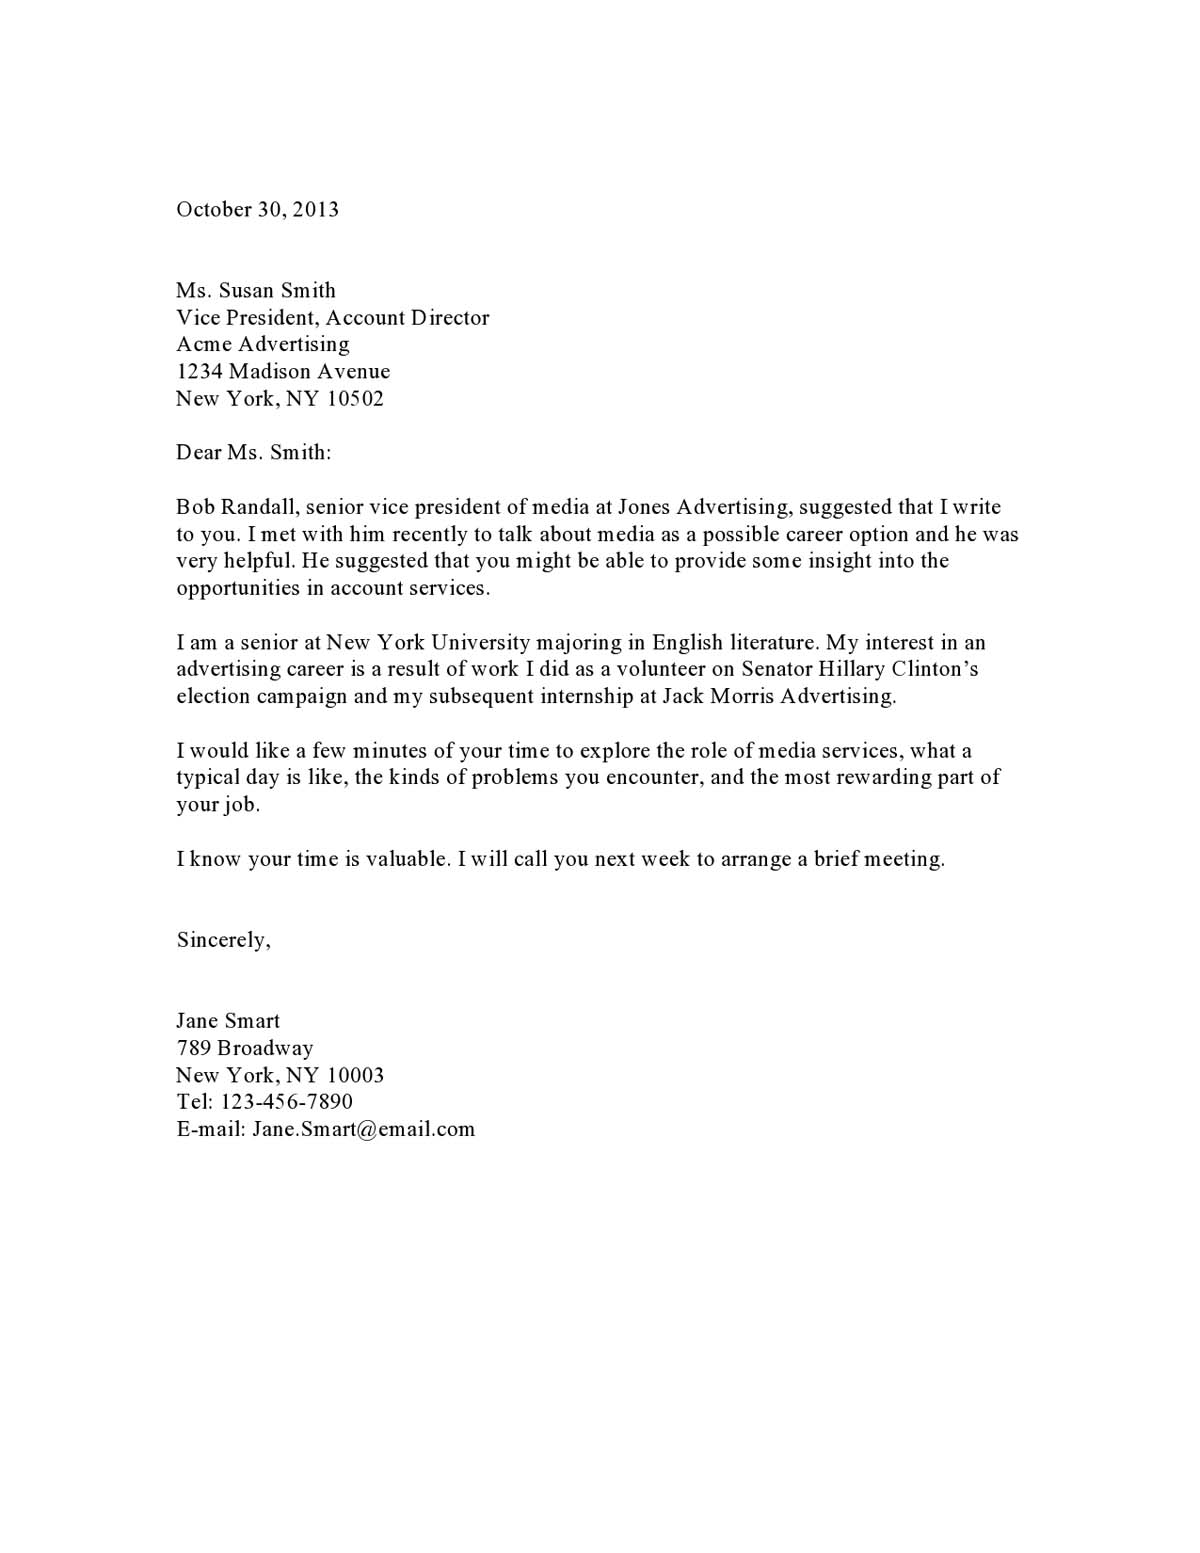 Sample cover letter for applying a job for Example of a cover letter when applying for a job